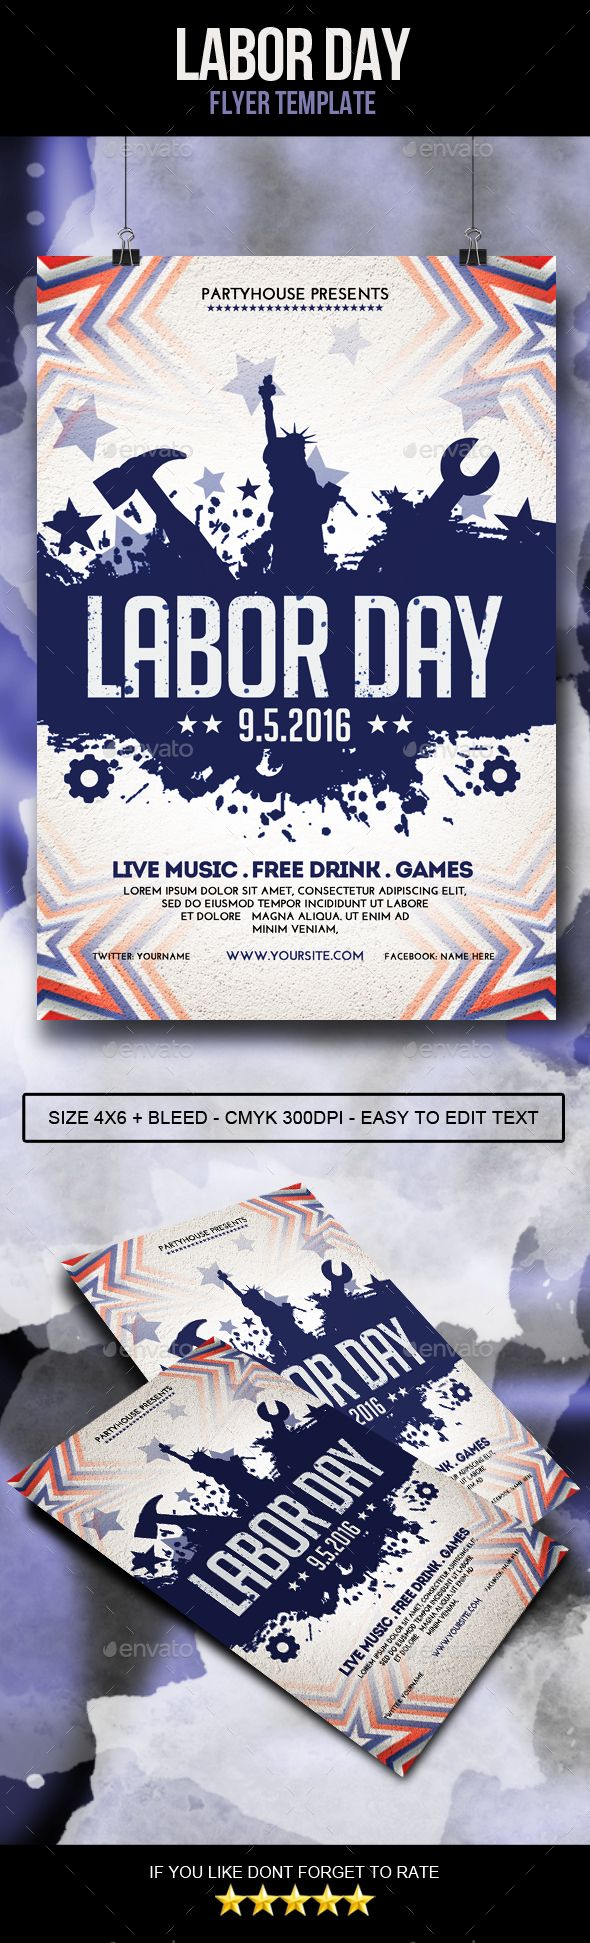 1612 best Abstract Flyer Templates images on Pinterest | Event ...